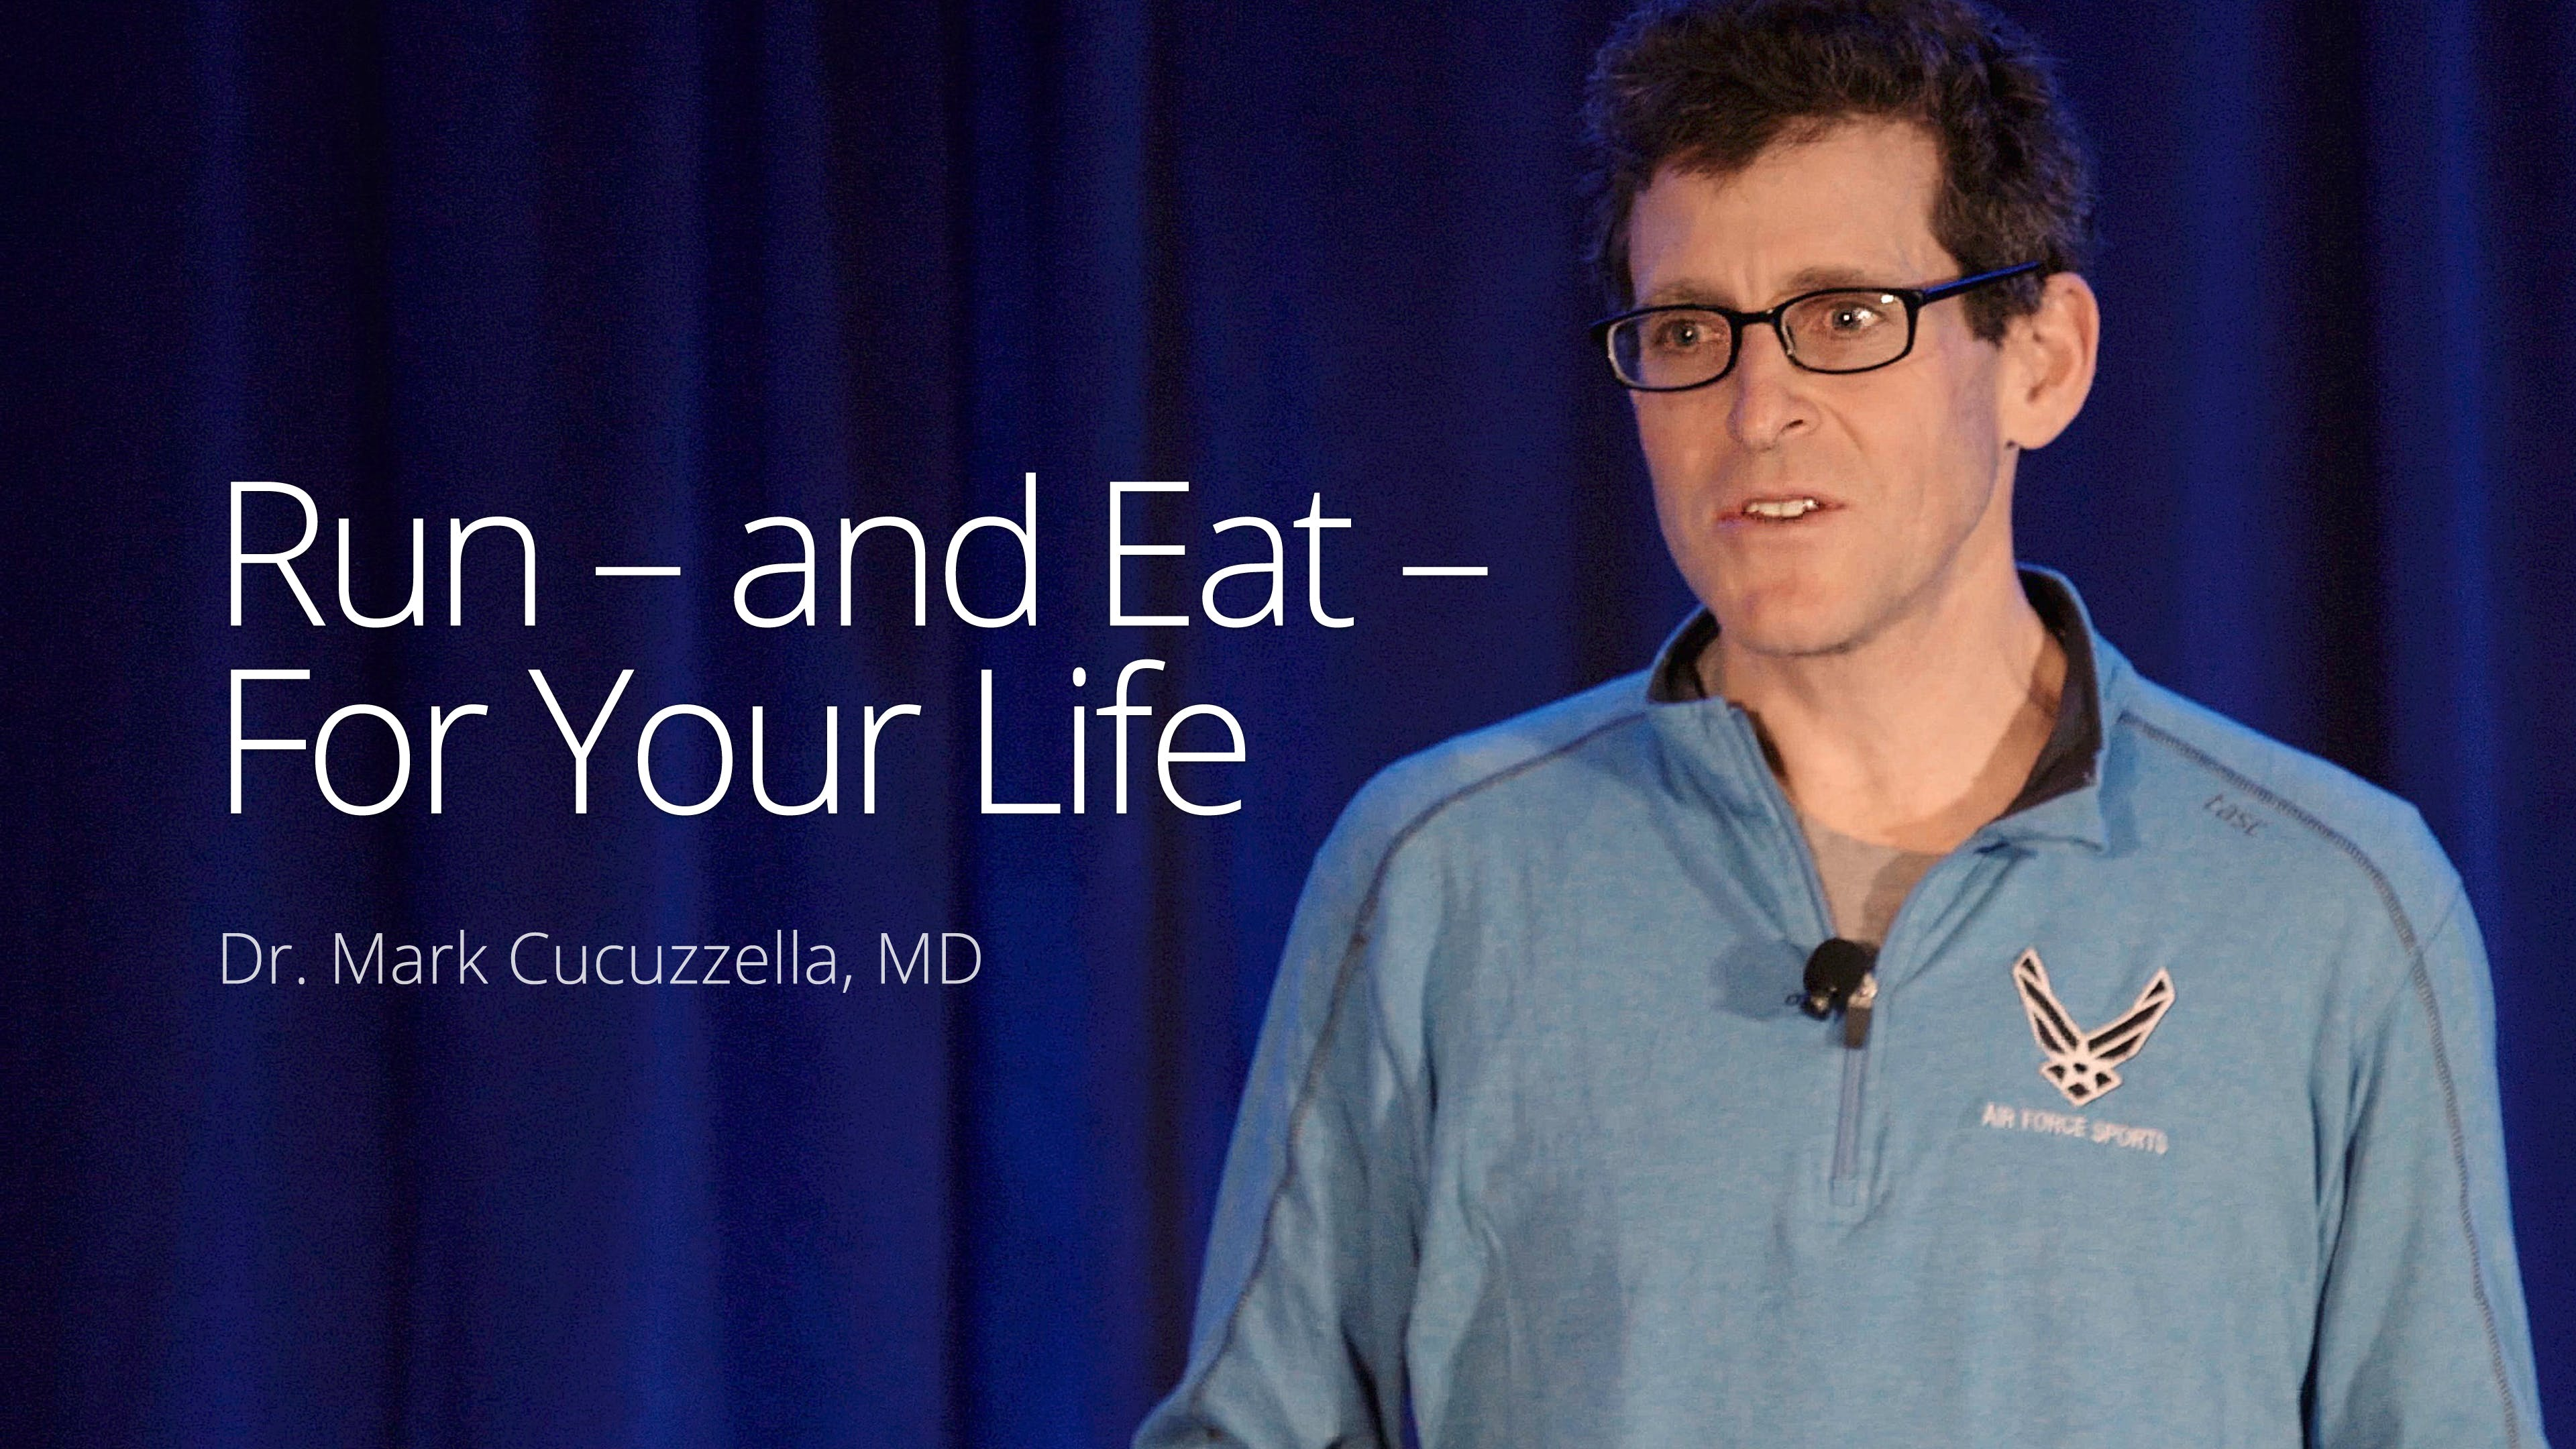 Run –and eat –for your life